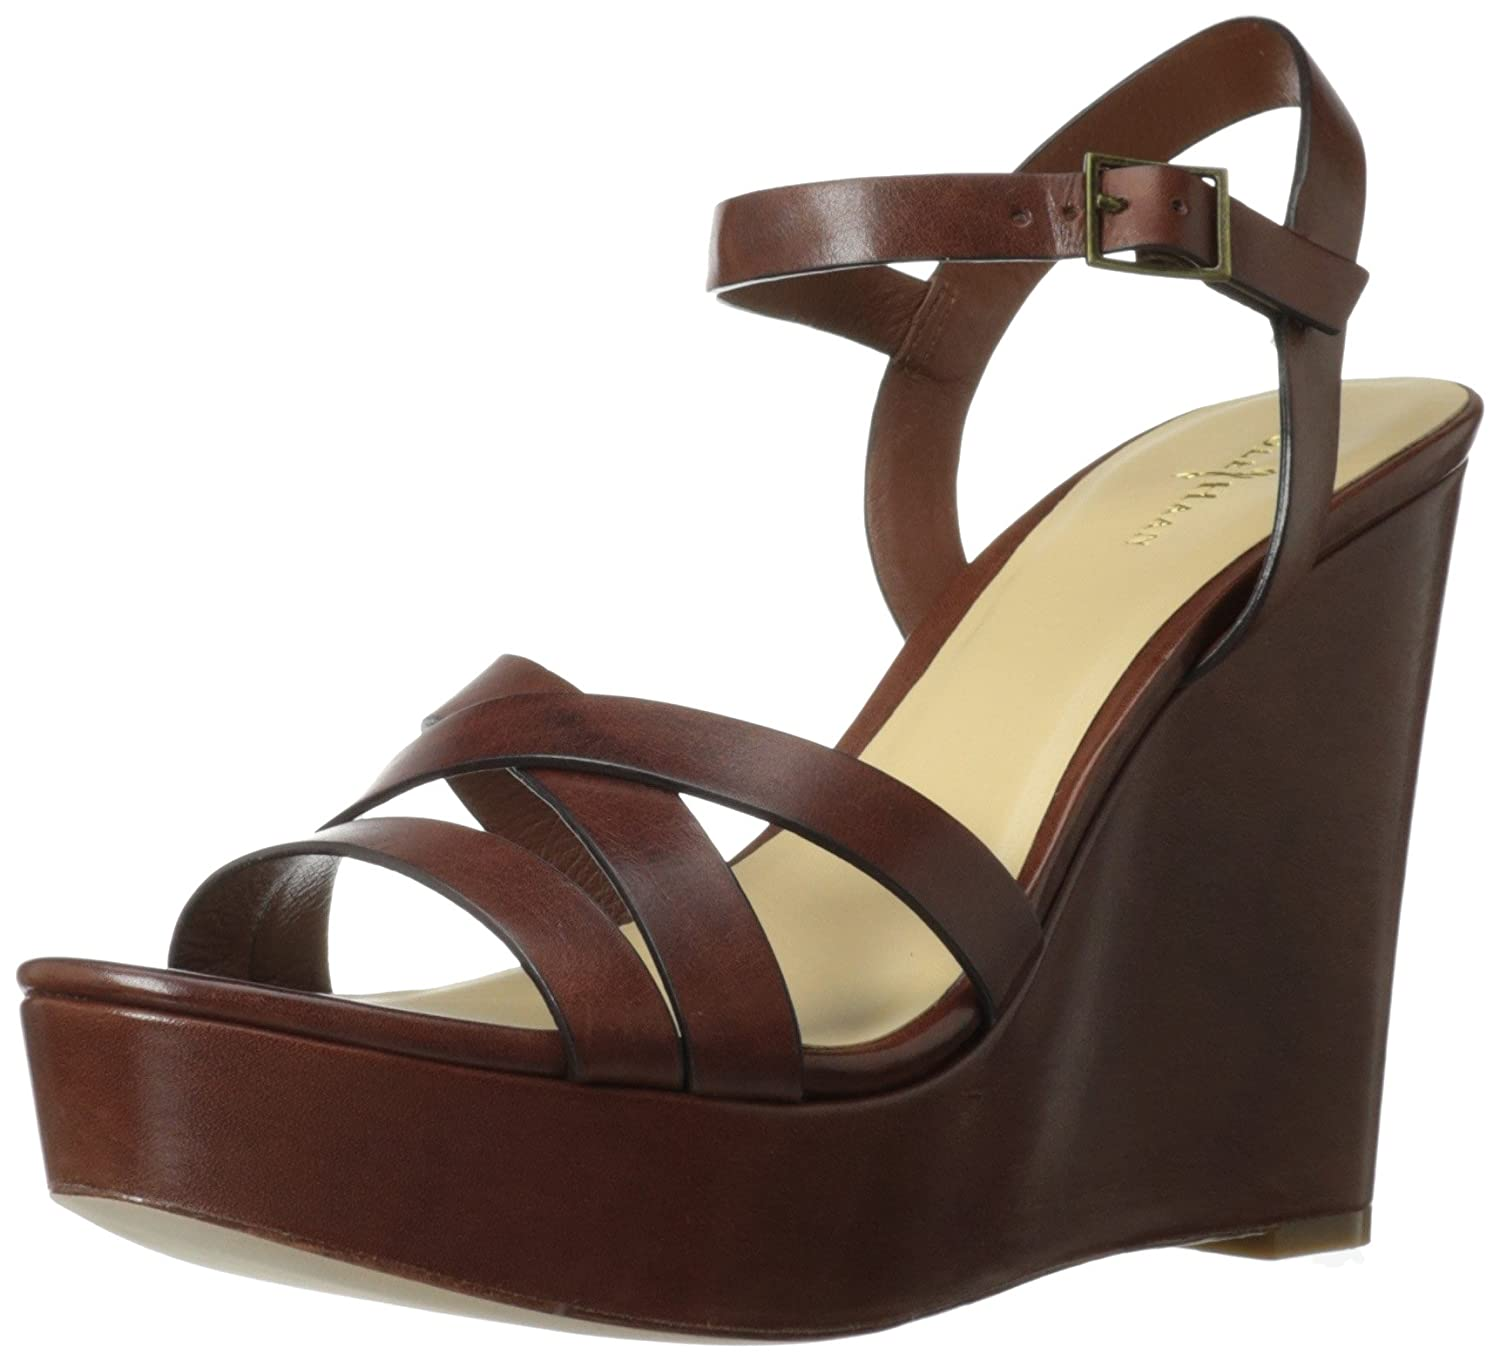 Cole Haan Women's Melrose Wedge Sandal B00EKAZIQM 9.5 B(M) US|Sequoia